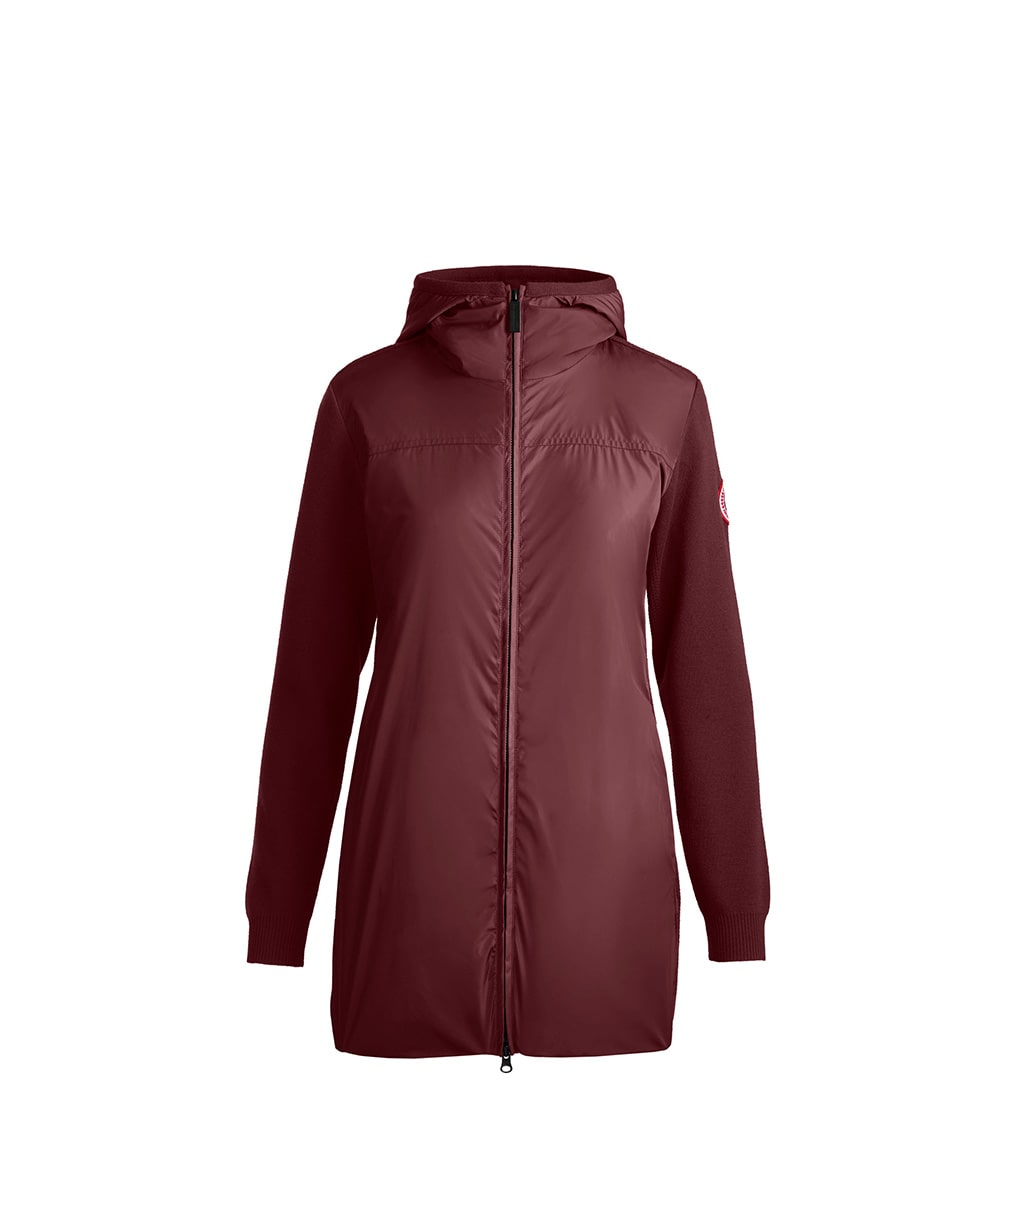 WINDBRIDGE HOODED JACKET